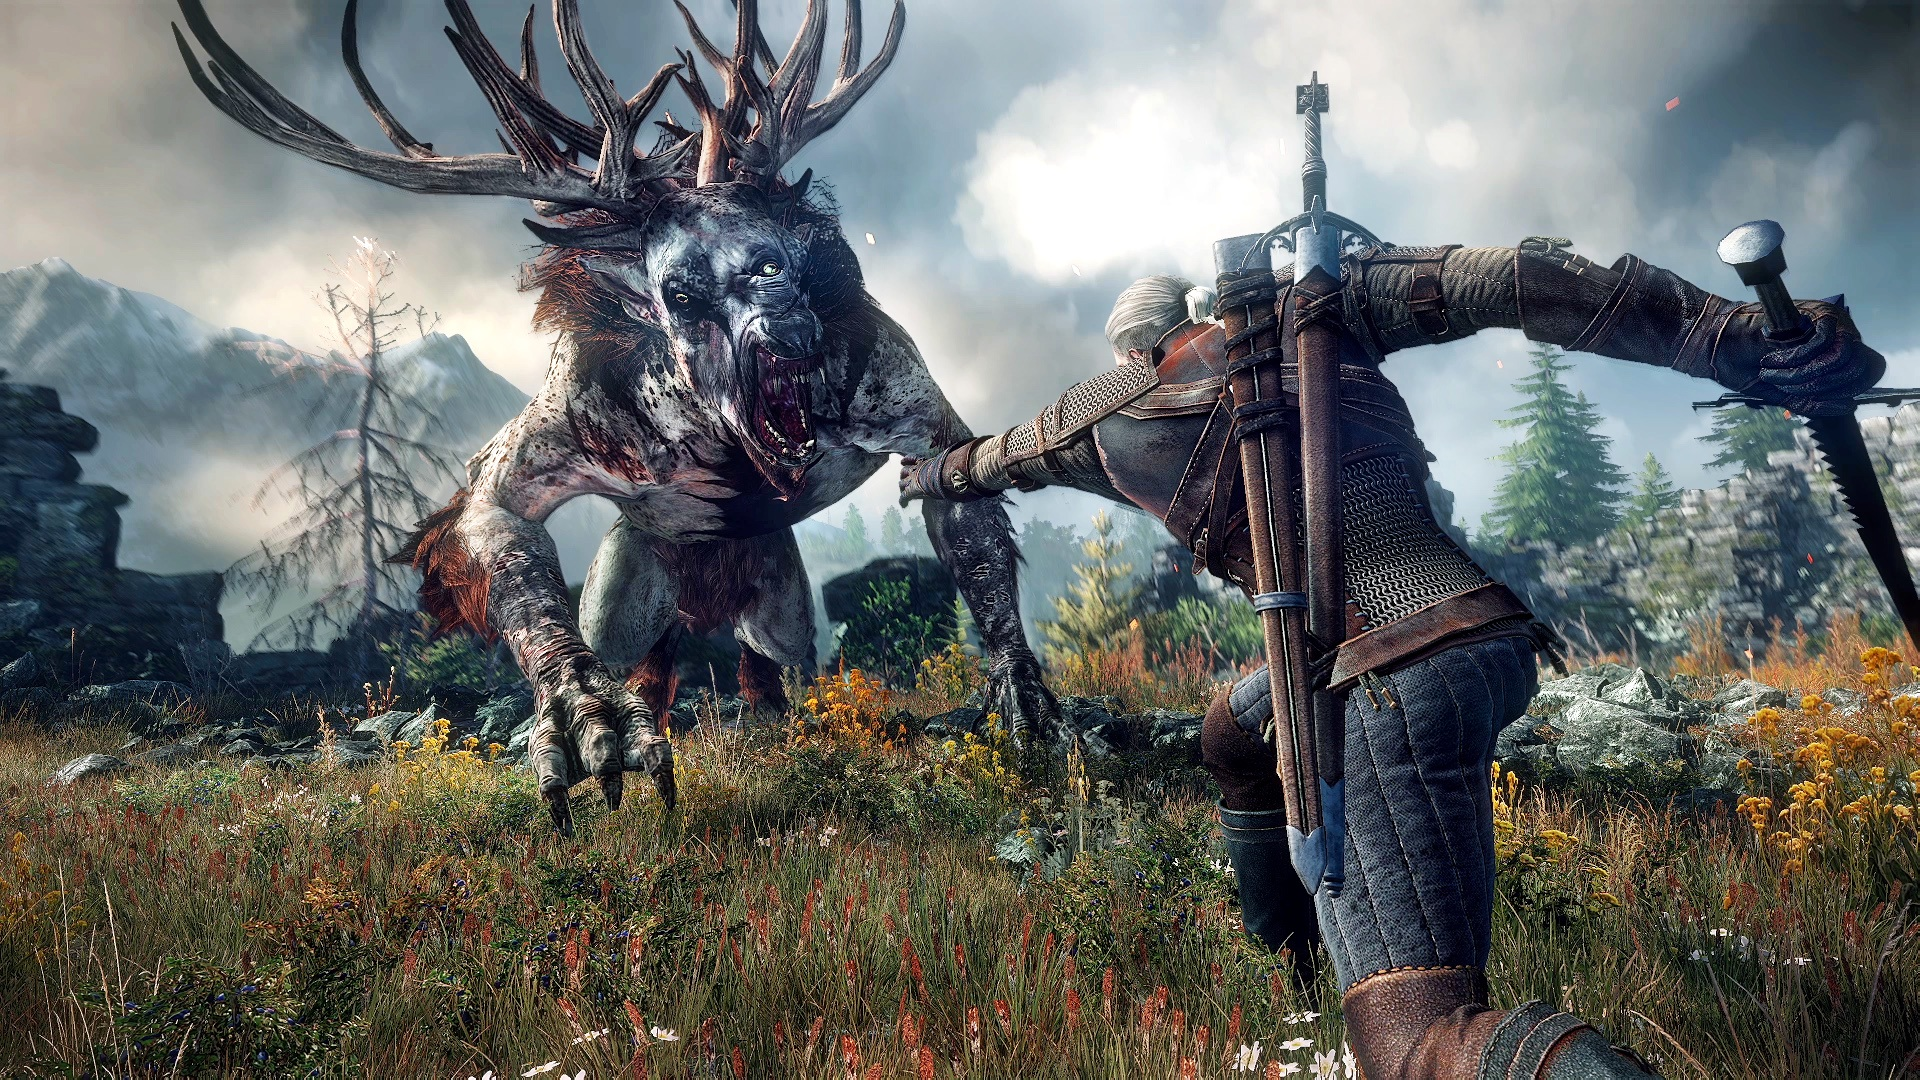 The Witcher 3: Wild Hunt Install Size is at Least 50 GB for PlayStation 4